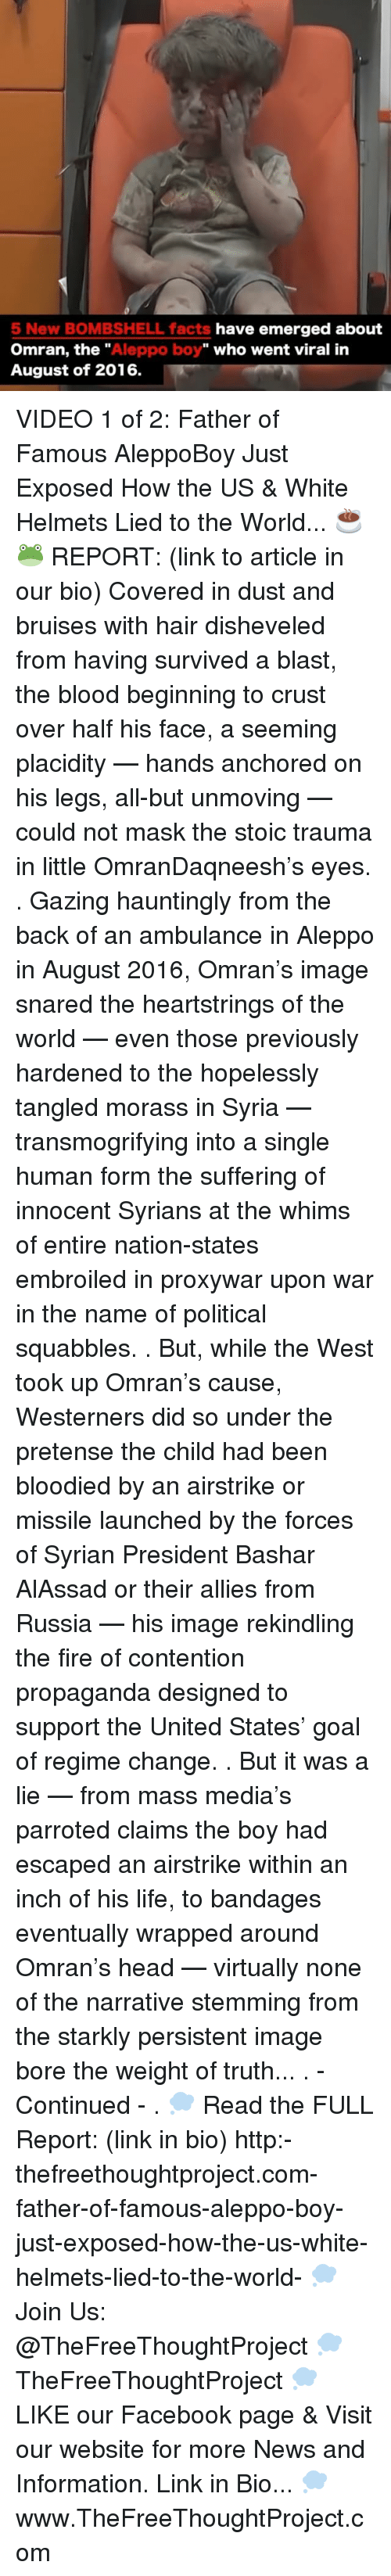 "pretense: 5 New BOMBSHELL facts  have emerged about  Omran, the  Aleppo boy"" who went viral in  August of 2016. VIDEO 1 of 2: Father of Famous AleppoBoy Just Exposed How the US & White Helmets Lied to the World... ☕️🐸 REPORT: (link to article in our bio) Covered in dust and bruises with hair disheveled from having survived a blast, the blood beginning to crust over half his face, a seeming placidity — hands anchored on his legs, all-but unmoving — could not mask the stoic trauma in little OmranDaqneesh's eyes. . Gazing hauntingly from the back of an ambulance in Aleppo in August 2016, Omran's image snared the heartstrings of the world — even those previously hardened to the hopelessly tangled morass in Syria — transmogrifying into a single human form the suffering of innocent Syrians at the whims of entire nation-states embroiled in proxywar upon war in the name of political squabbles. . But, while the West took up Omran's cause, Westerners did so under the pretense the child had been bloodied by an airstrike or missile launched by the forces of Syrian President Bashar AlAssad or their allies from Russia — his image rekindling the fire of contention propaganda designed to support the United States' goal of regime change. . But it was a lie — from mass media's parroted claims the boy had escaped an airstrike within an inch of his life, to bandages eventually wrapped around Omran's head — virtually none of the narrative stemming from the starkly persistent image bore the weight of truth... . - Continued - . 💭 Read the FULL Report: (link in bio) http:-thefreethoughtproject.com-father-of-famous-aleppo-boy-just-exposed-how-the-us-white-helmets-lied-to-the-world- 💭 Join Us: @TheFreeThoughtProject 💭 TheFreeThoughtProject 💭 LIKE our Facebook page & Visit our website for more News and Information. Link in Bio... 💭 www.TheFreeThoughtProject.com"